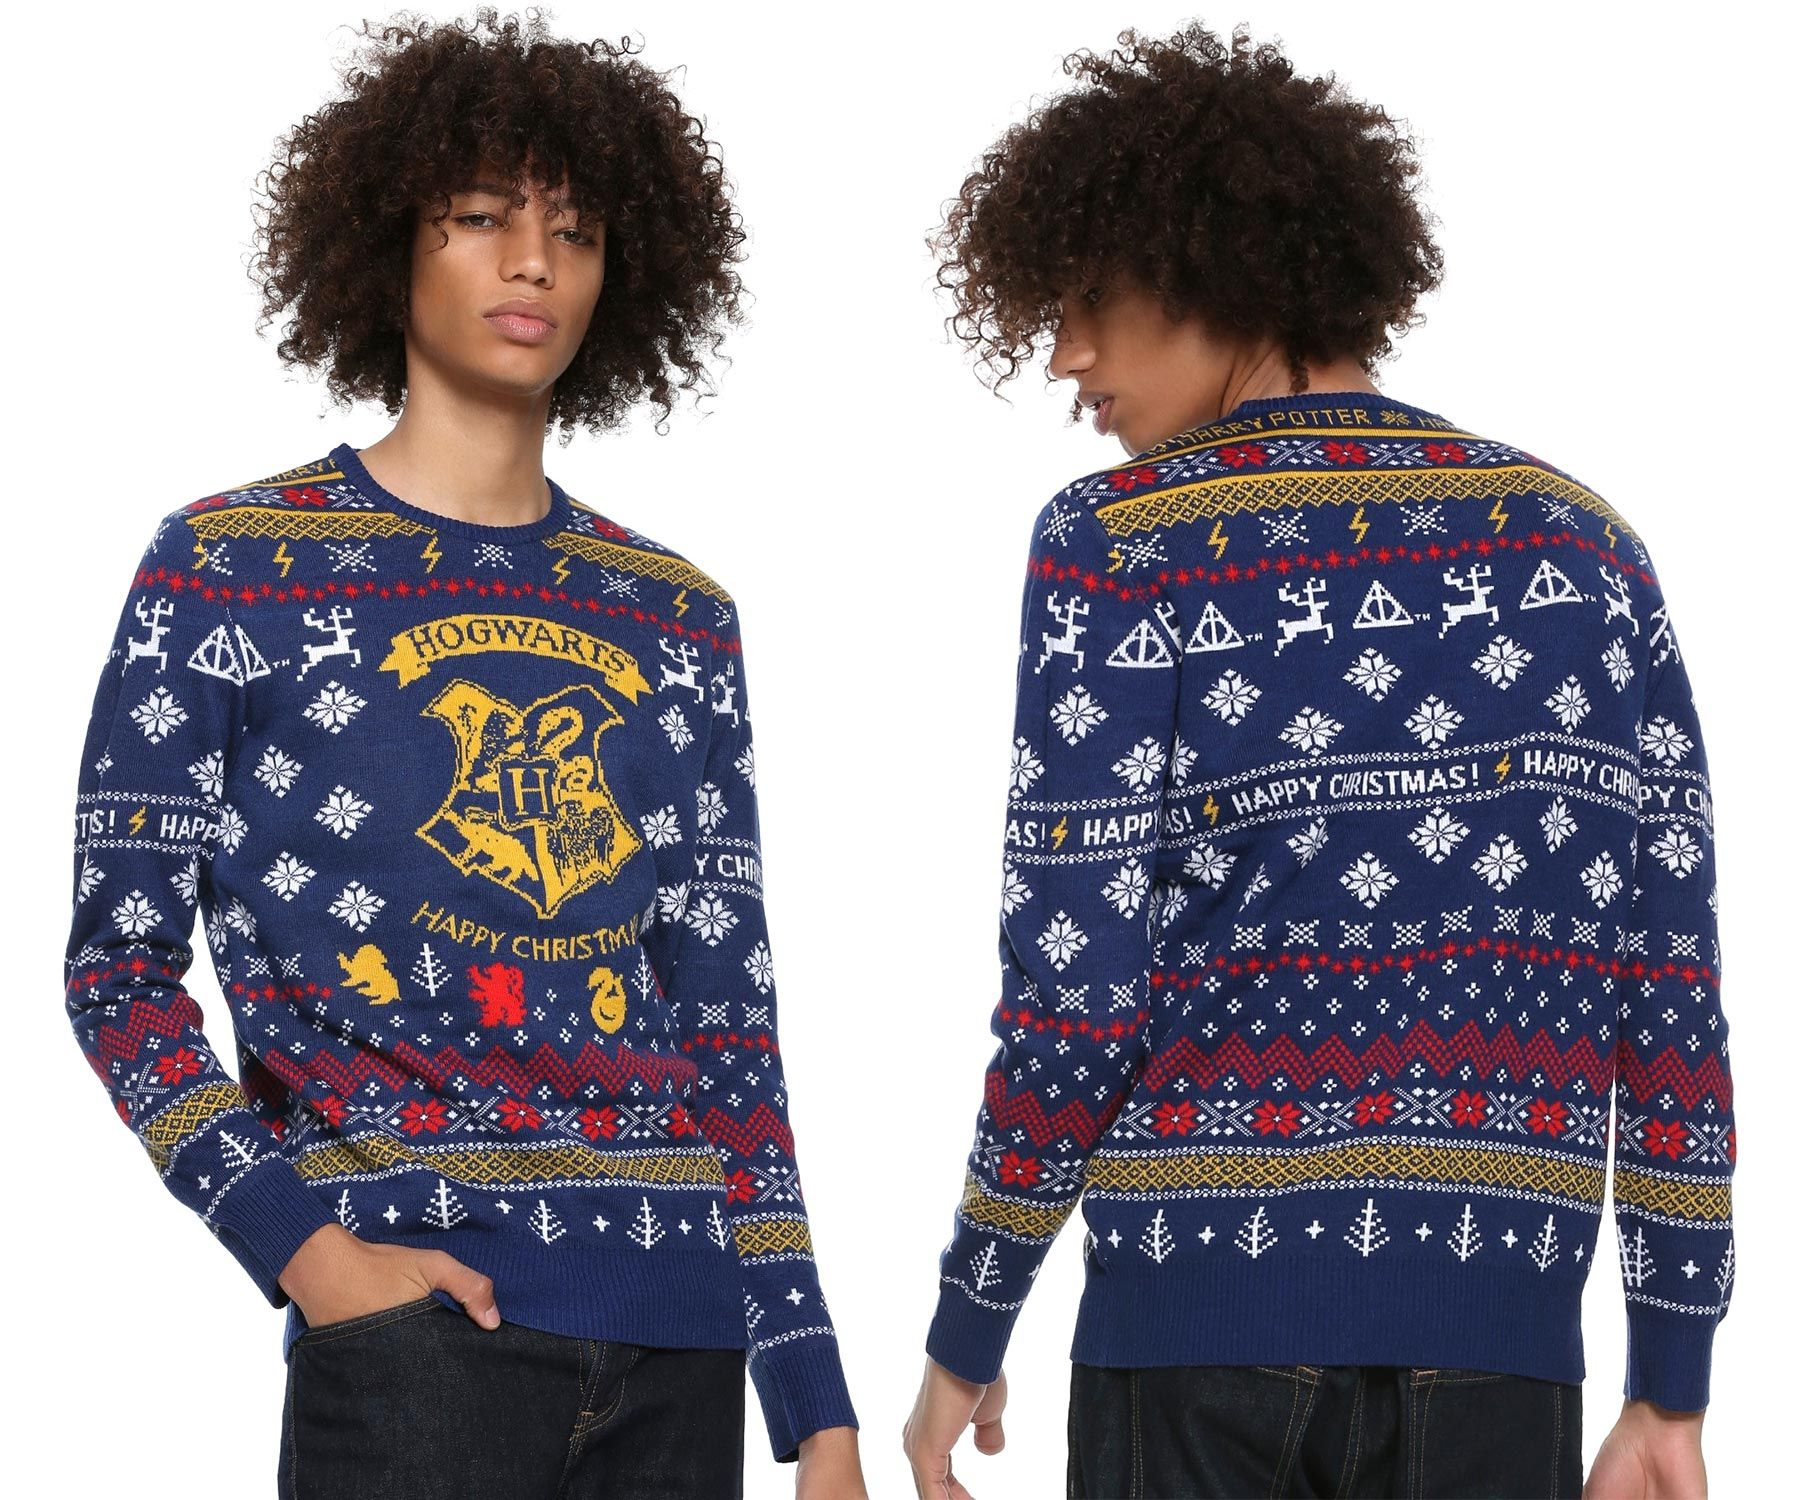 Hogwarts Harry Potter Happy Christmas AOP Knitted Ugly Sweater